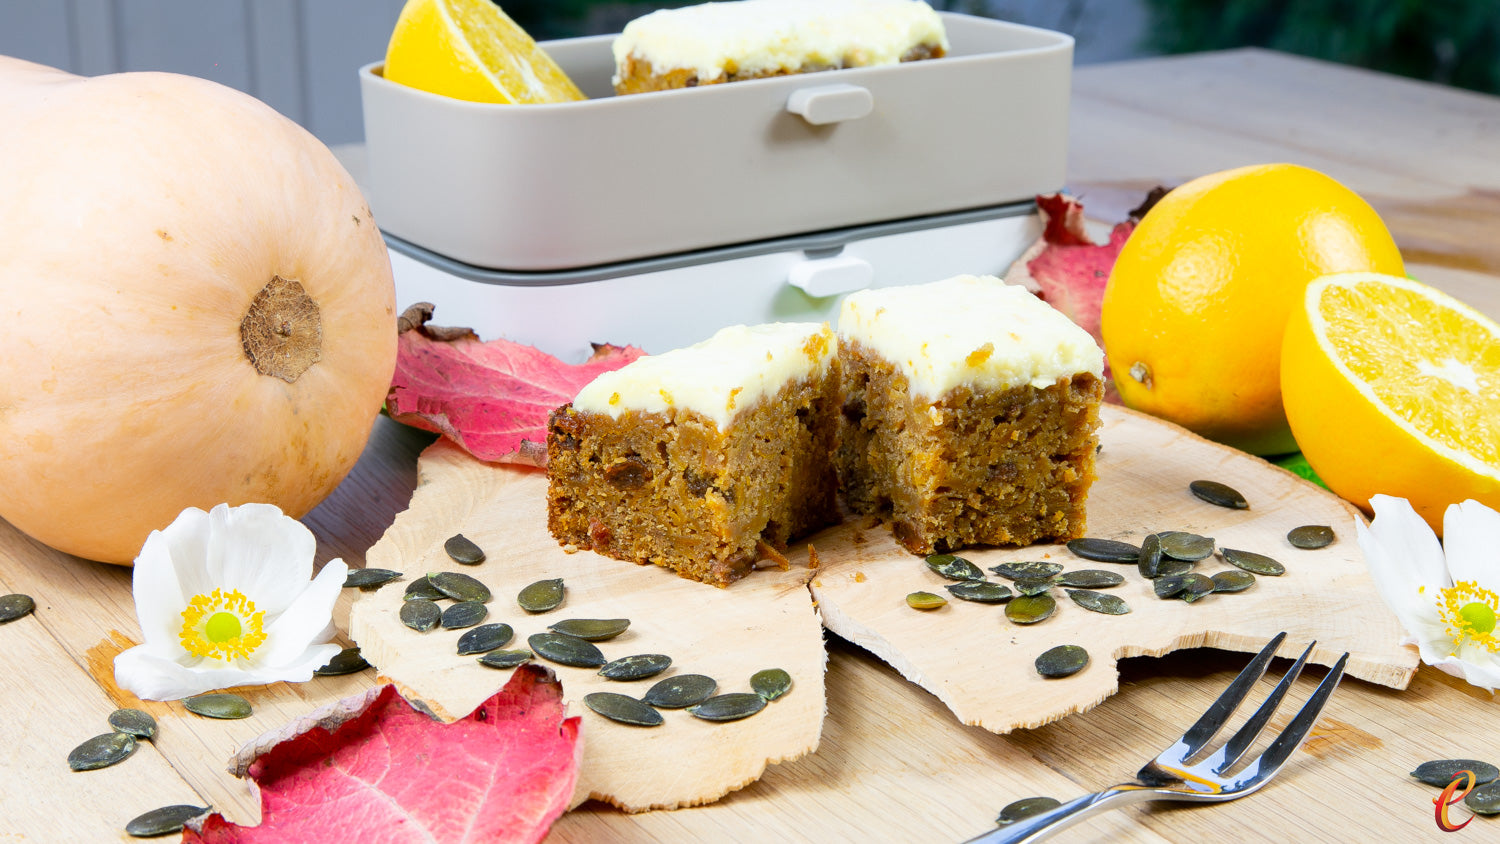 Autumnal Pumpkin & Orange Cake with Orange Frosting